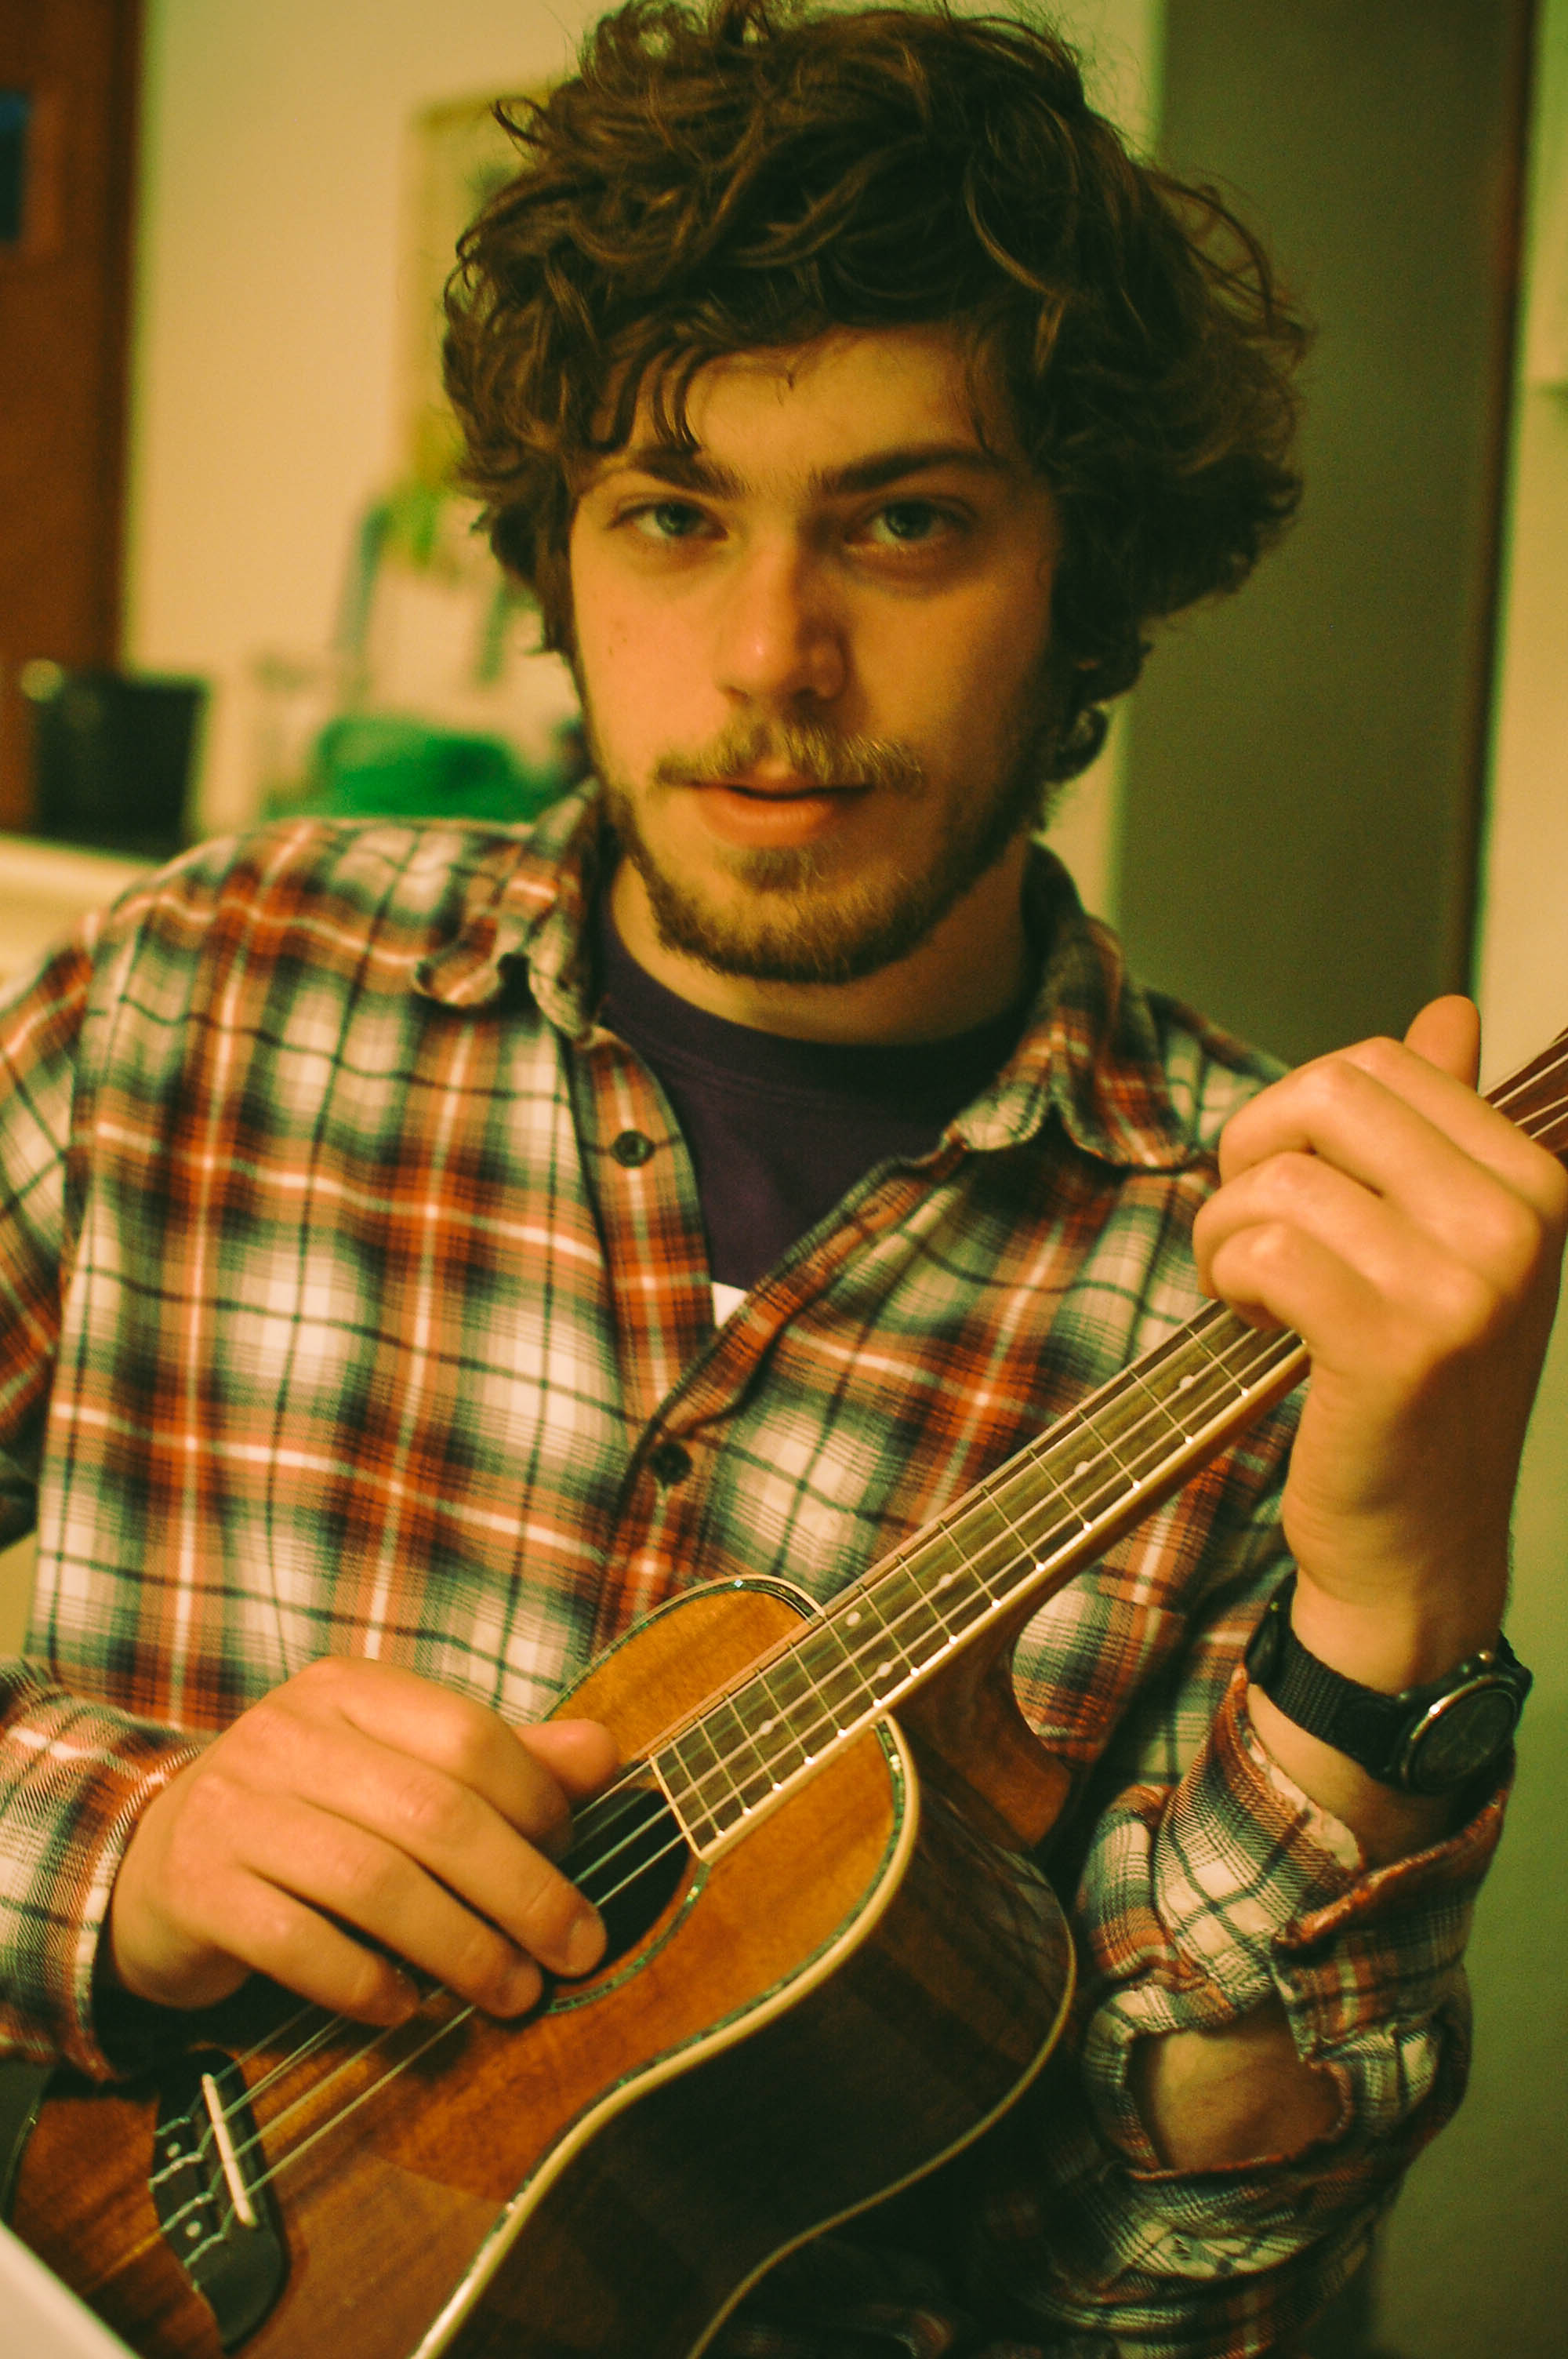 M. on ukulele late in the evening